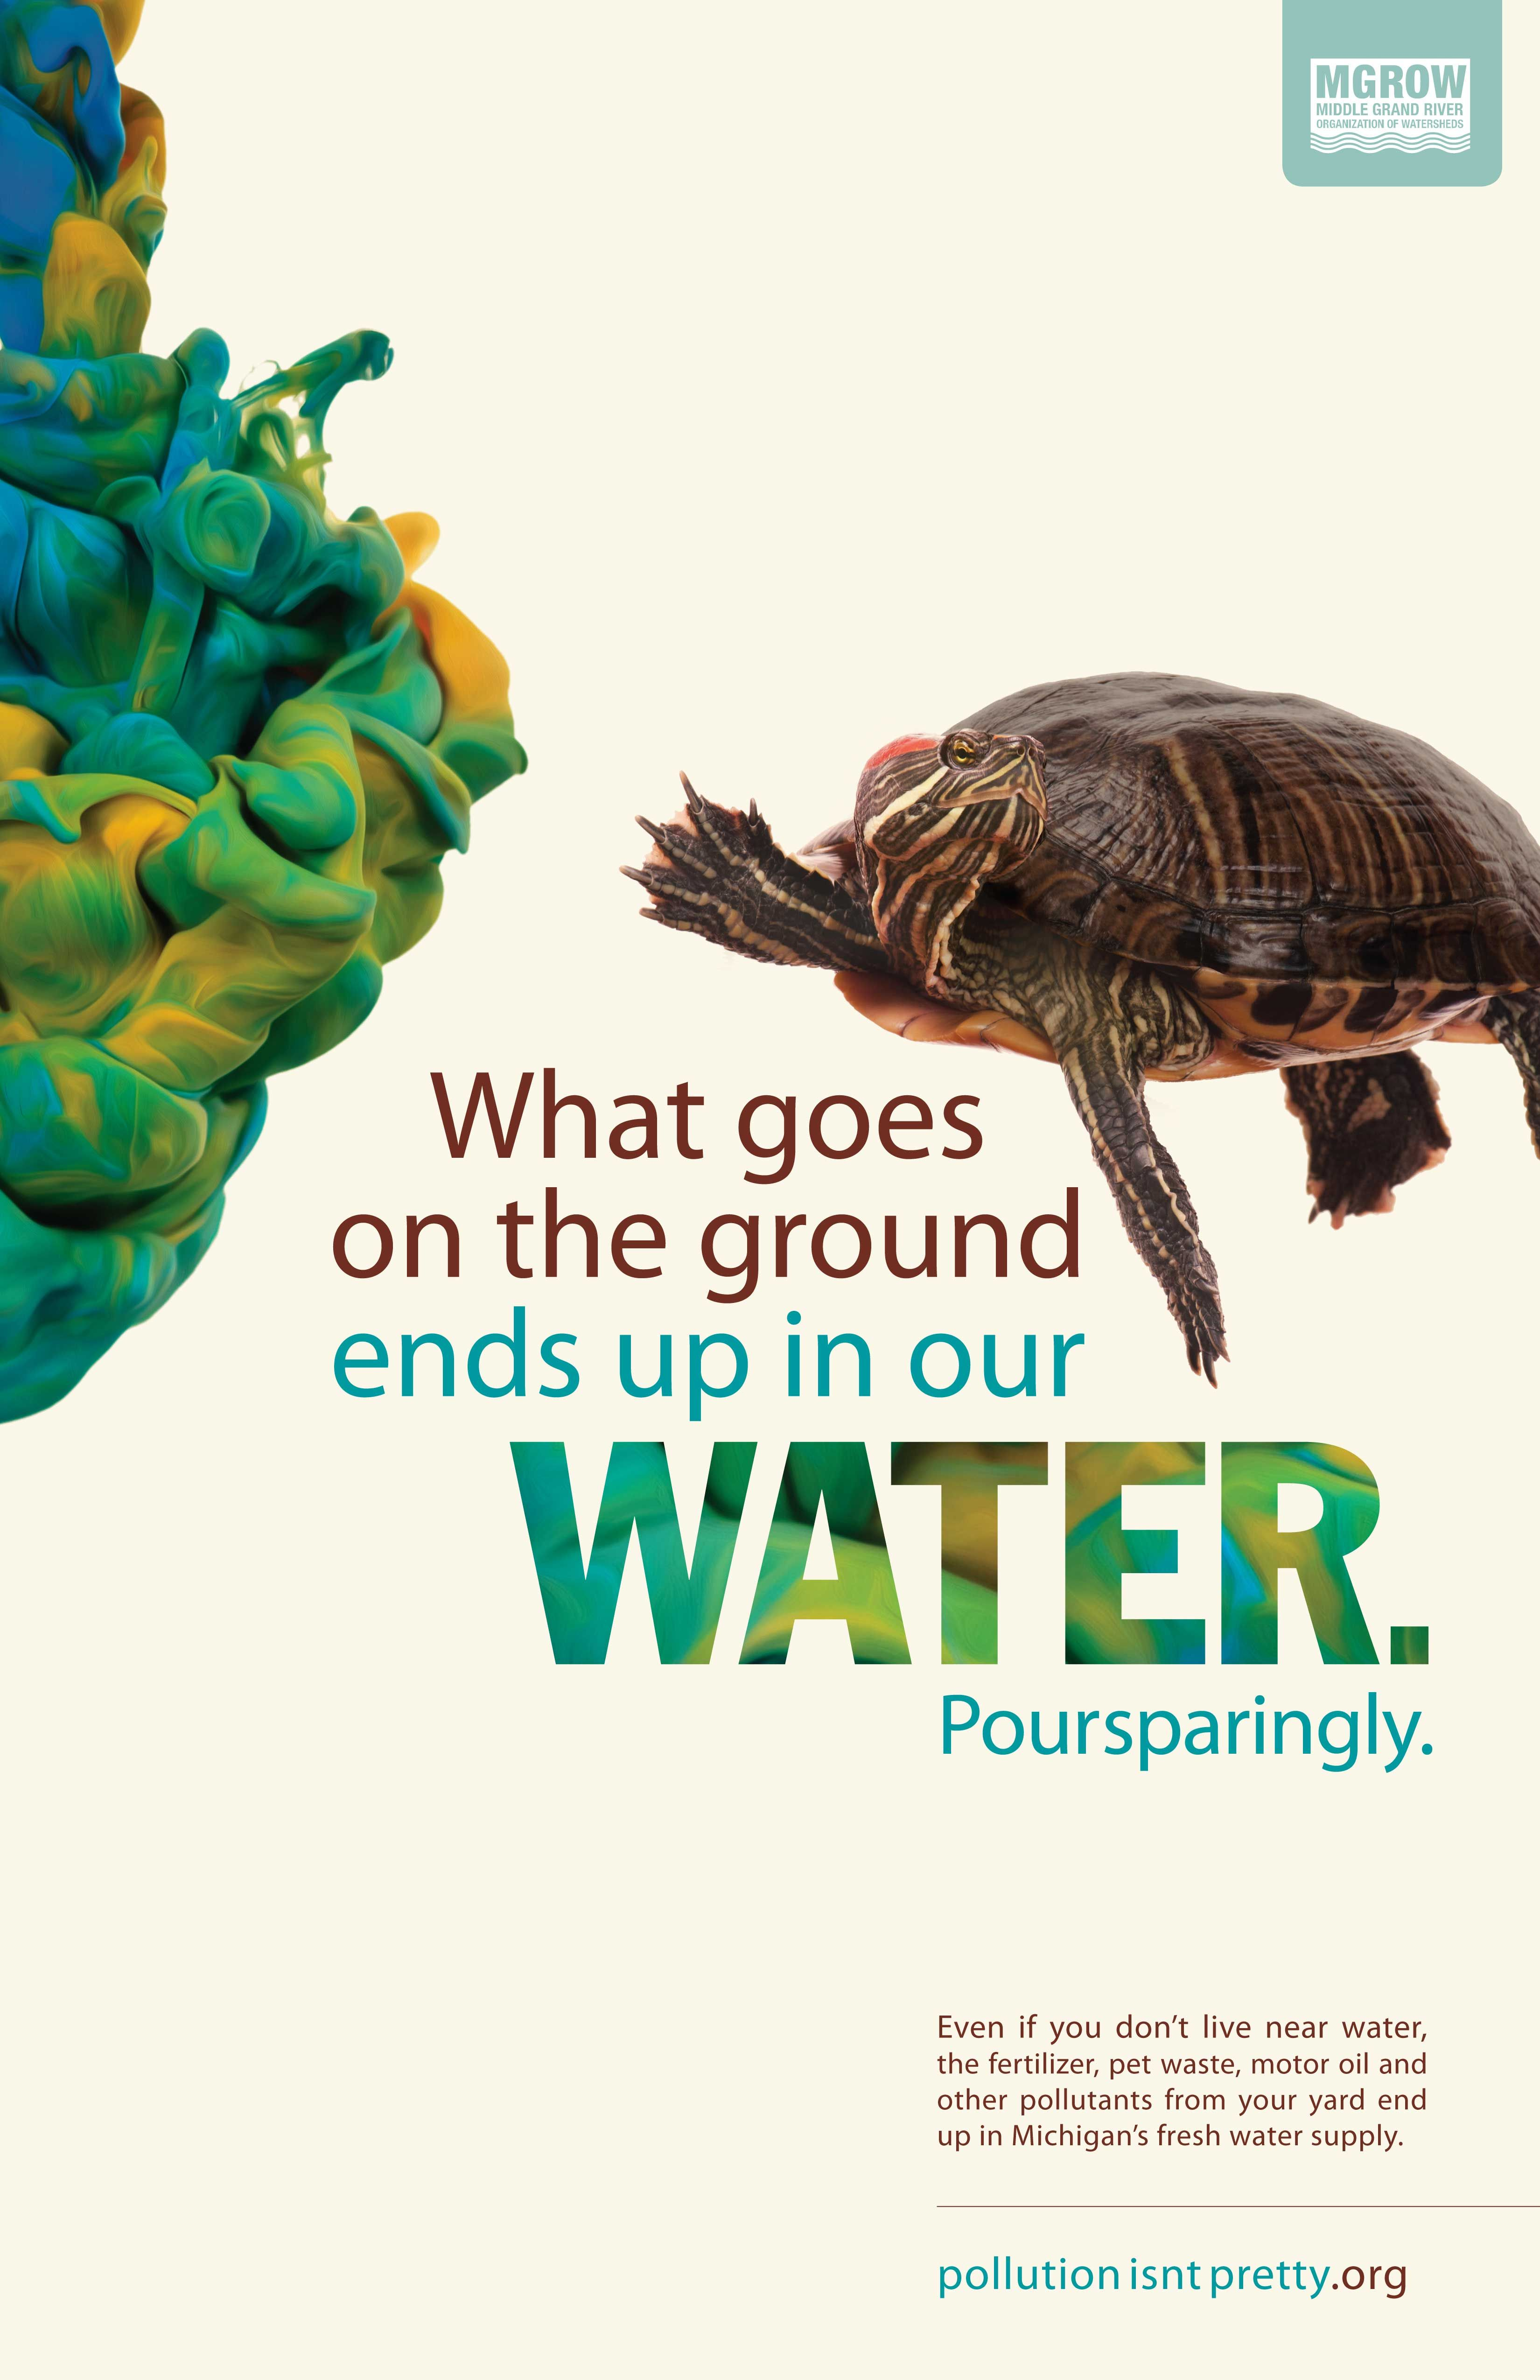 environmental water protection poster, Pollution Isn't